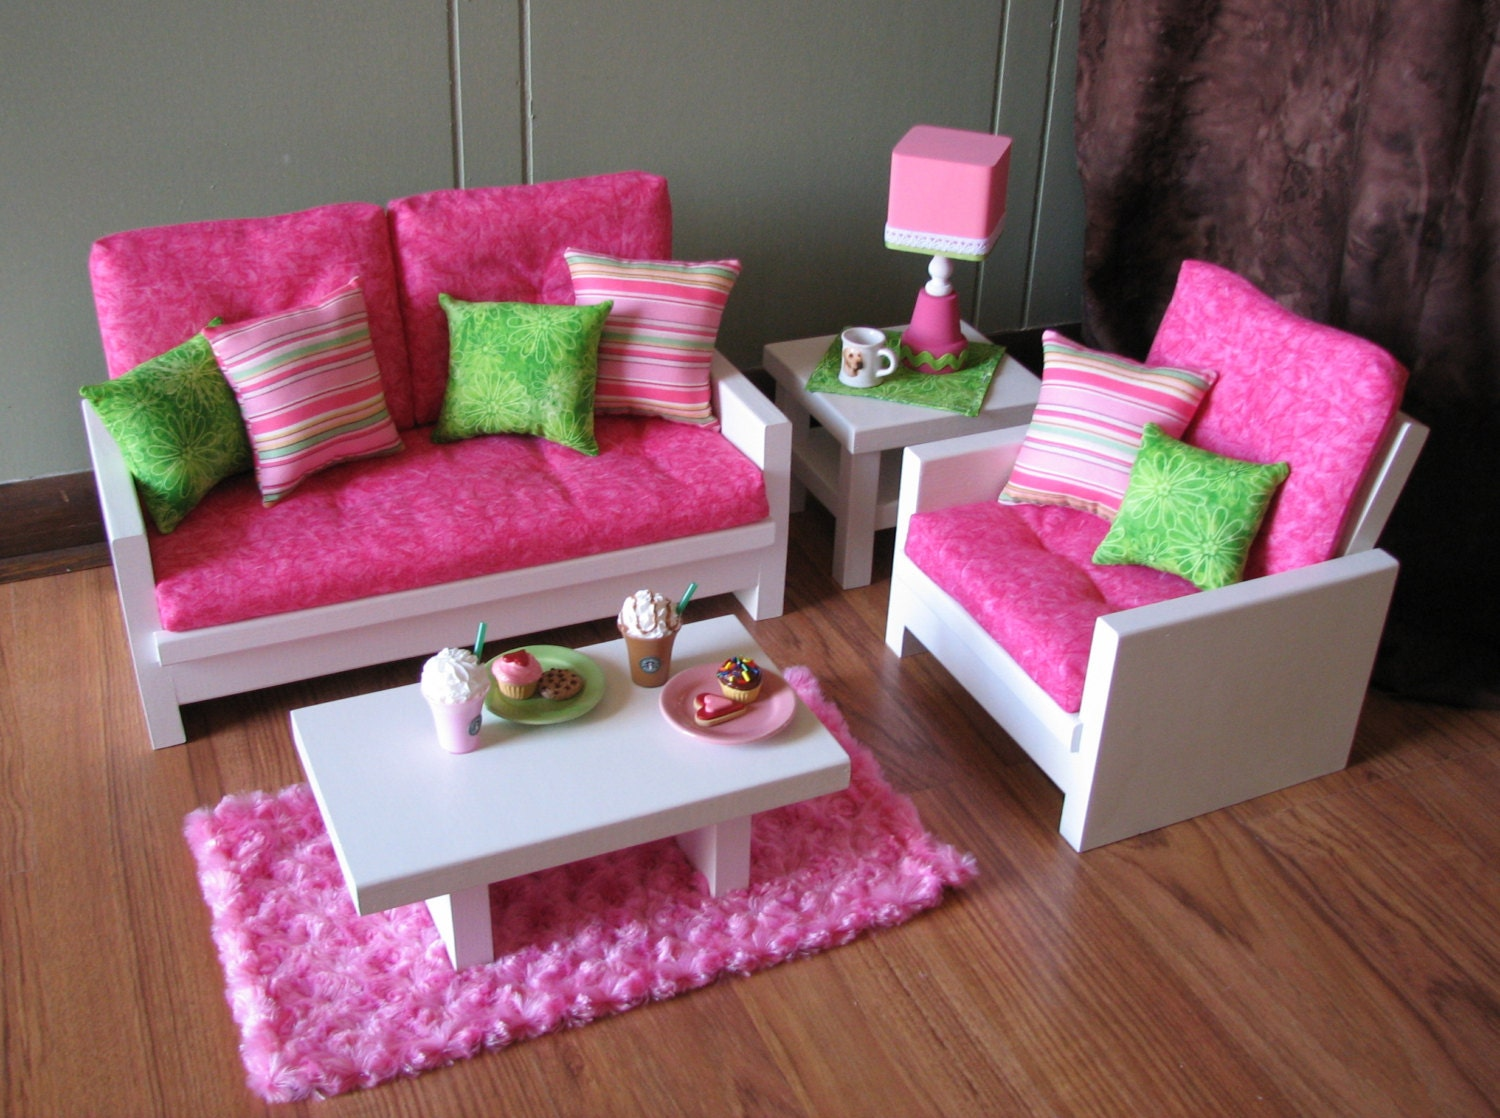 ... Girl sized Living Room - Loveseat / Chair / Coffee. 🔎zoom - 18 Doll Furniture American Girl Sized Living Room